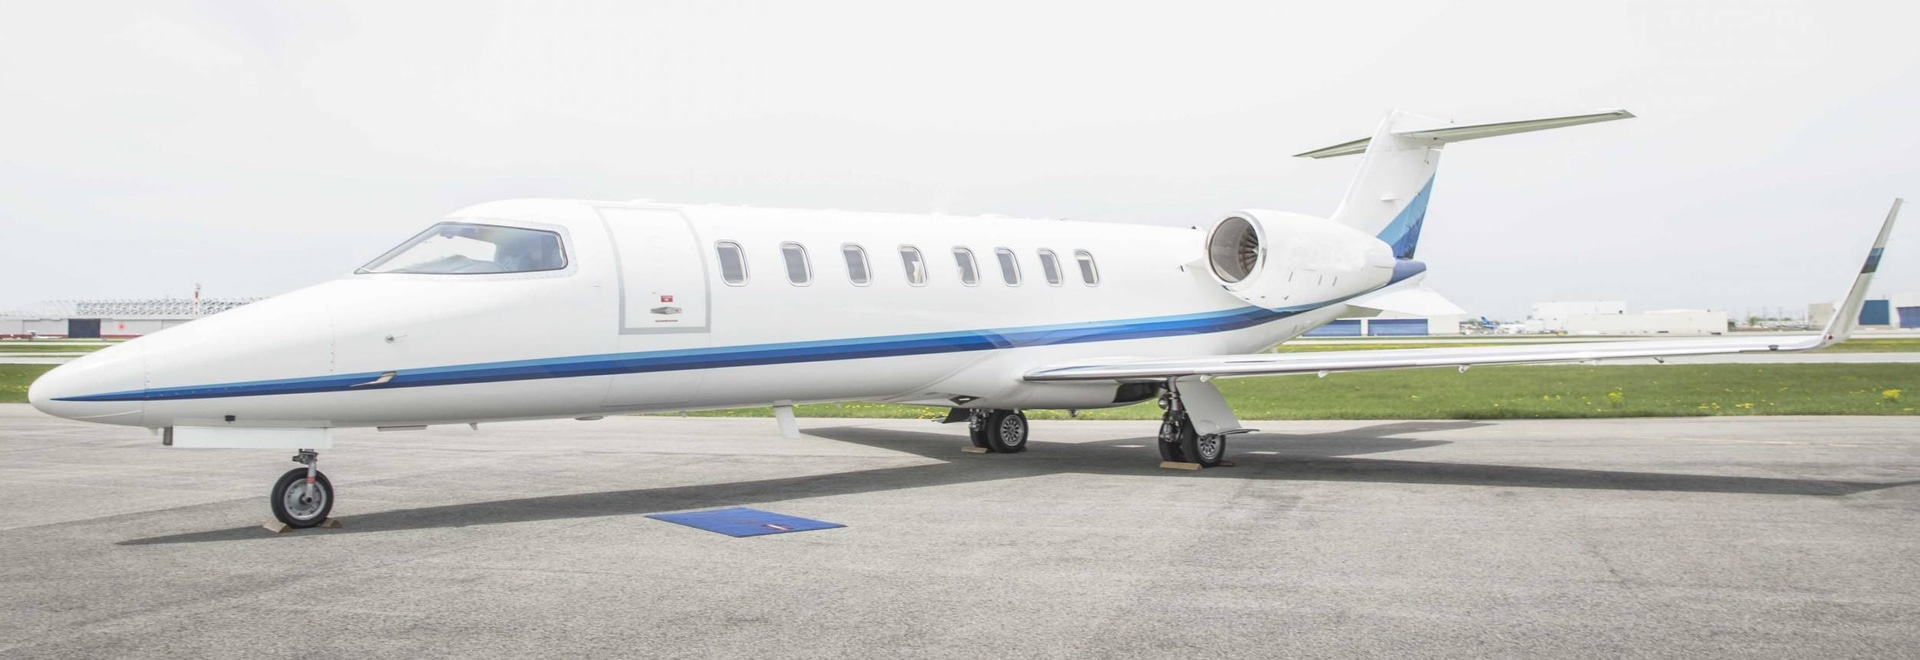 Skyservice has obtained approval for an STC to install the Satcom Direct Iridium-based DLU in the Learjet 45.